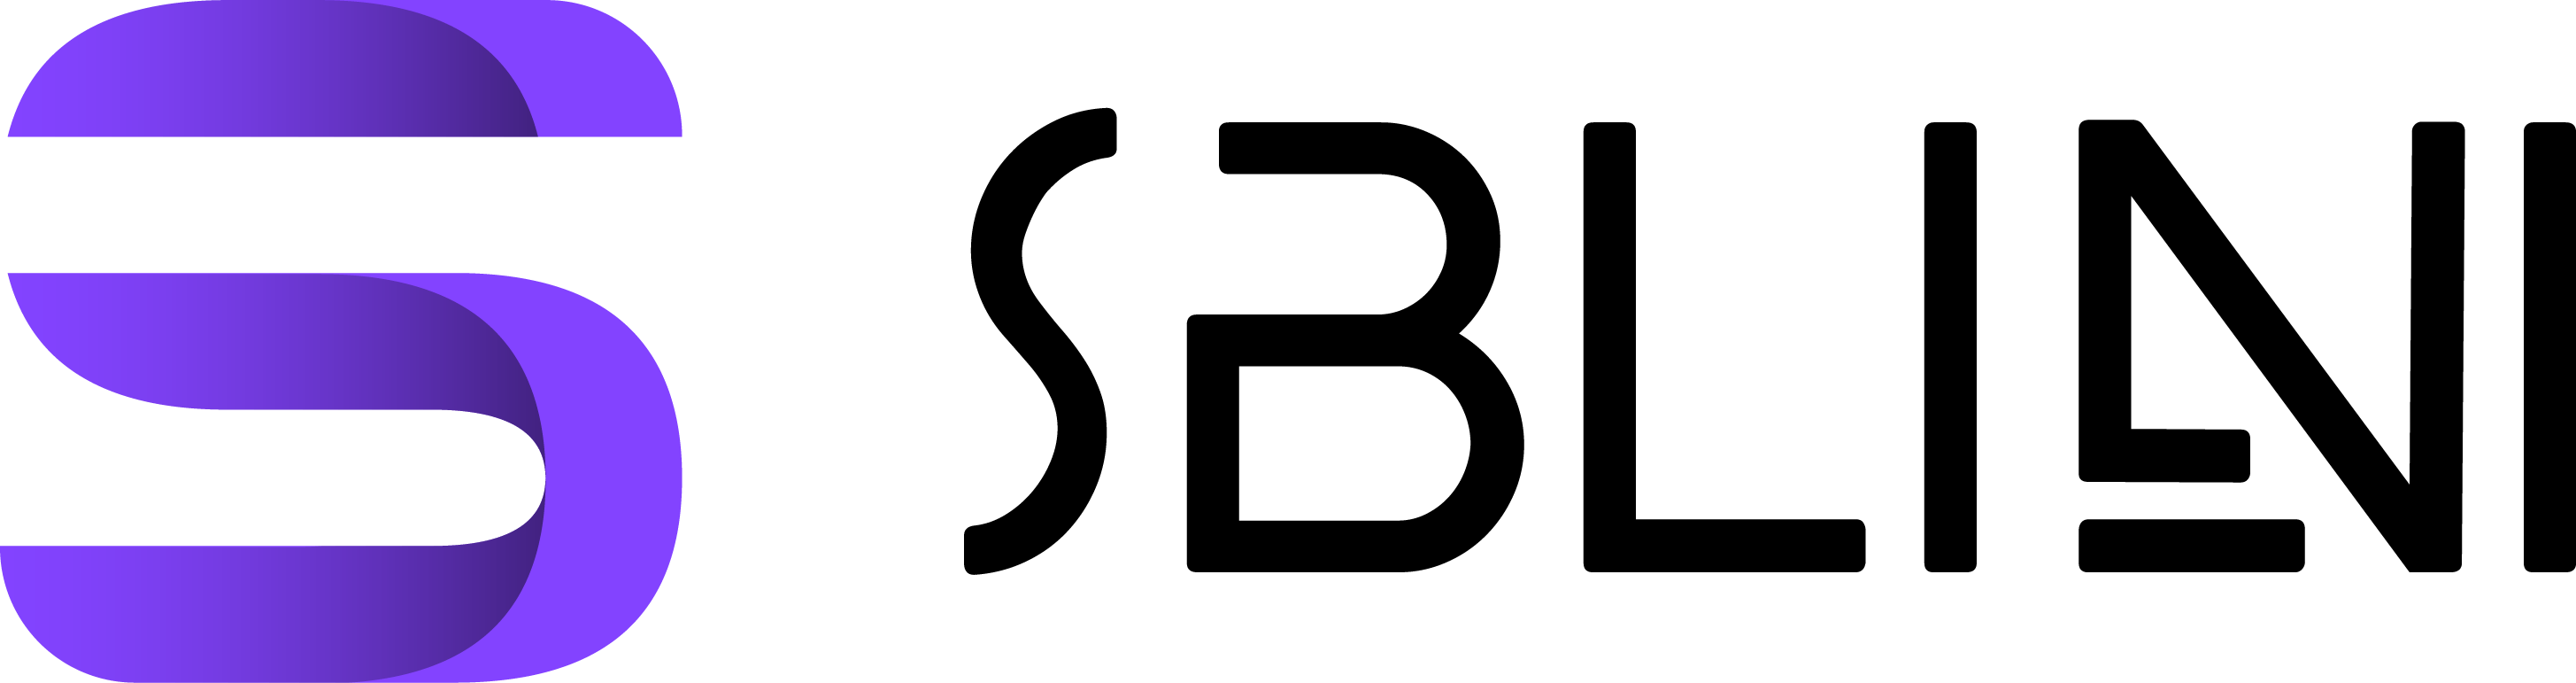 SBLINI Agency Development & Designs for companies and individuals